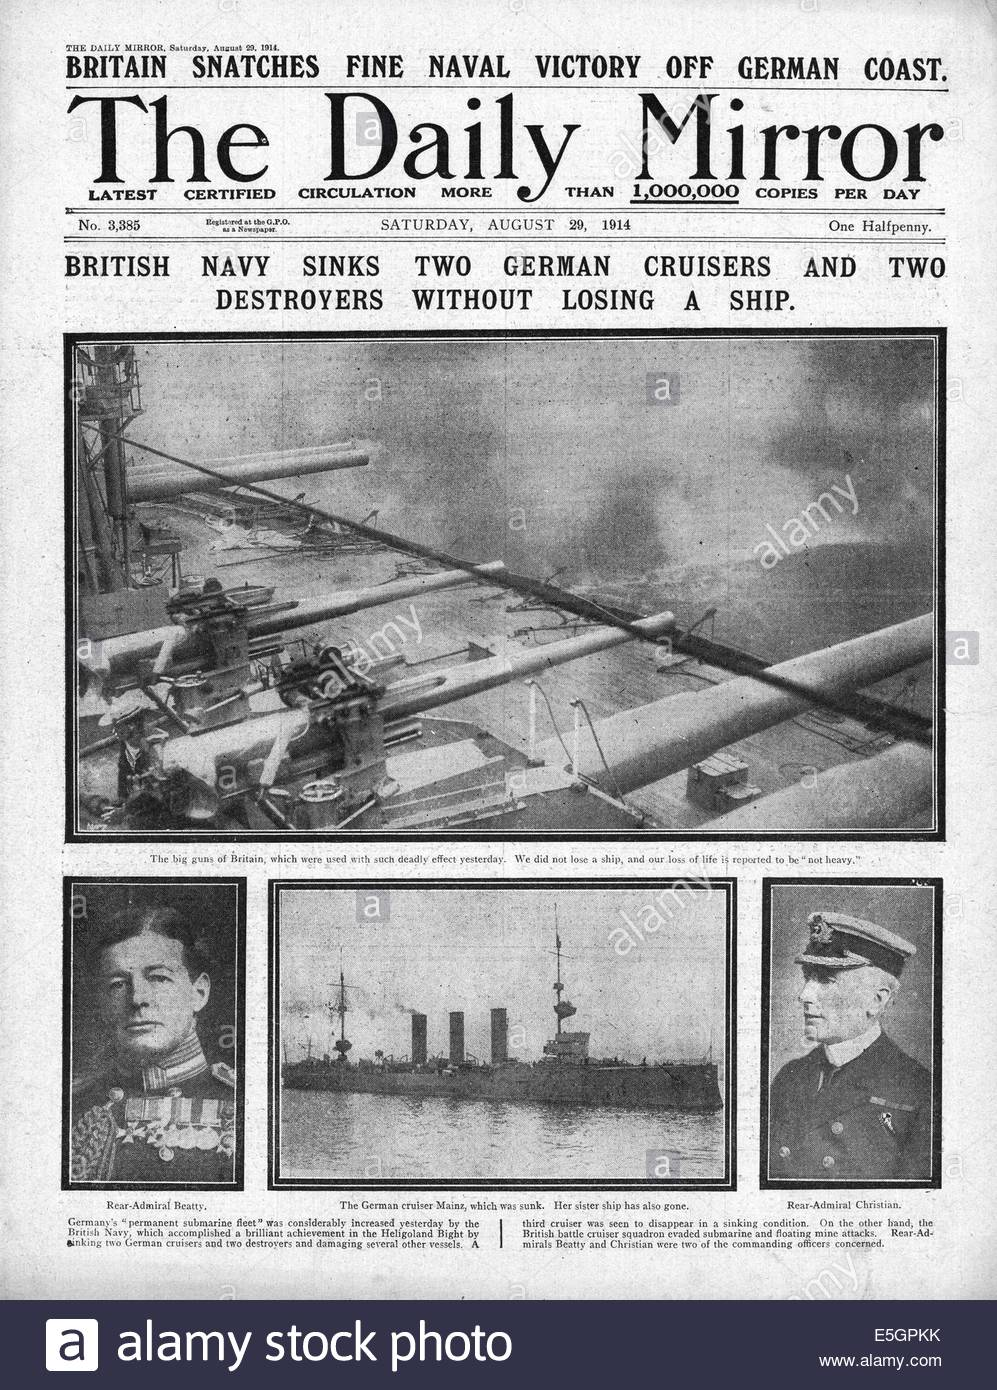 1914 Daily Mirror front page reporting the sinking of German warships SMS Mainz, SMS Cöln and SMS Ariadne, destroyer Stock Photo